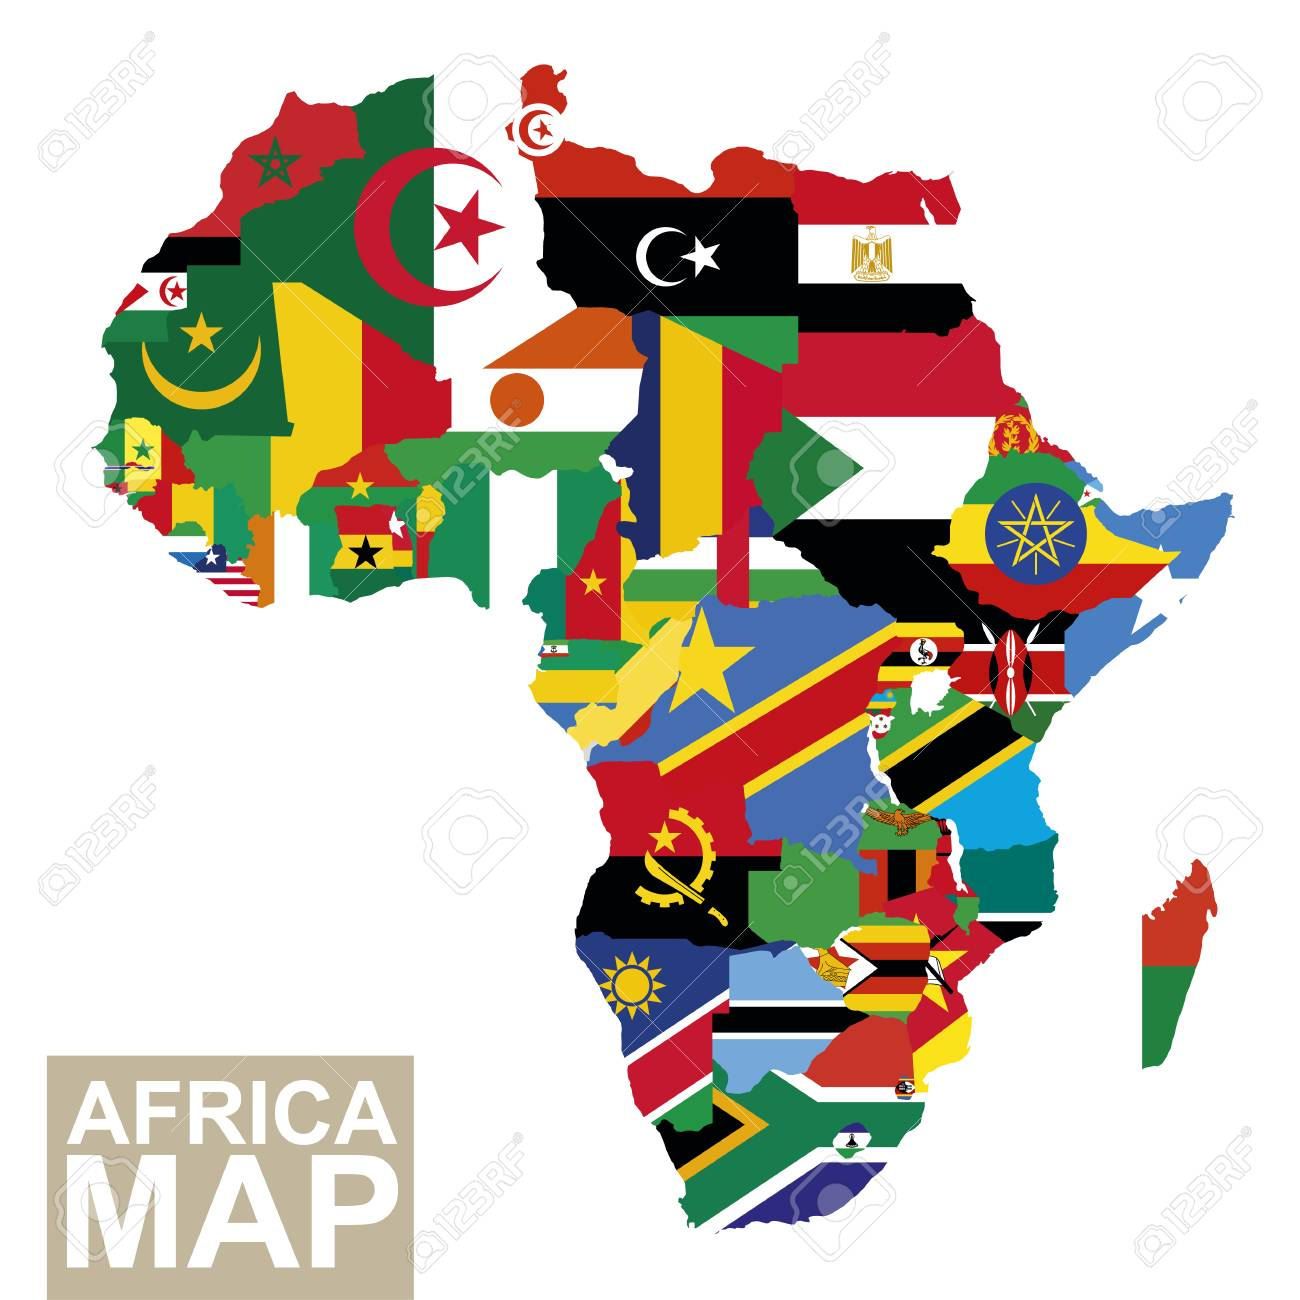 Africa Map. Vector Map Of Africa With Flags. African Countries